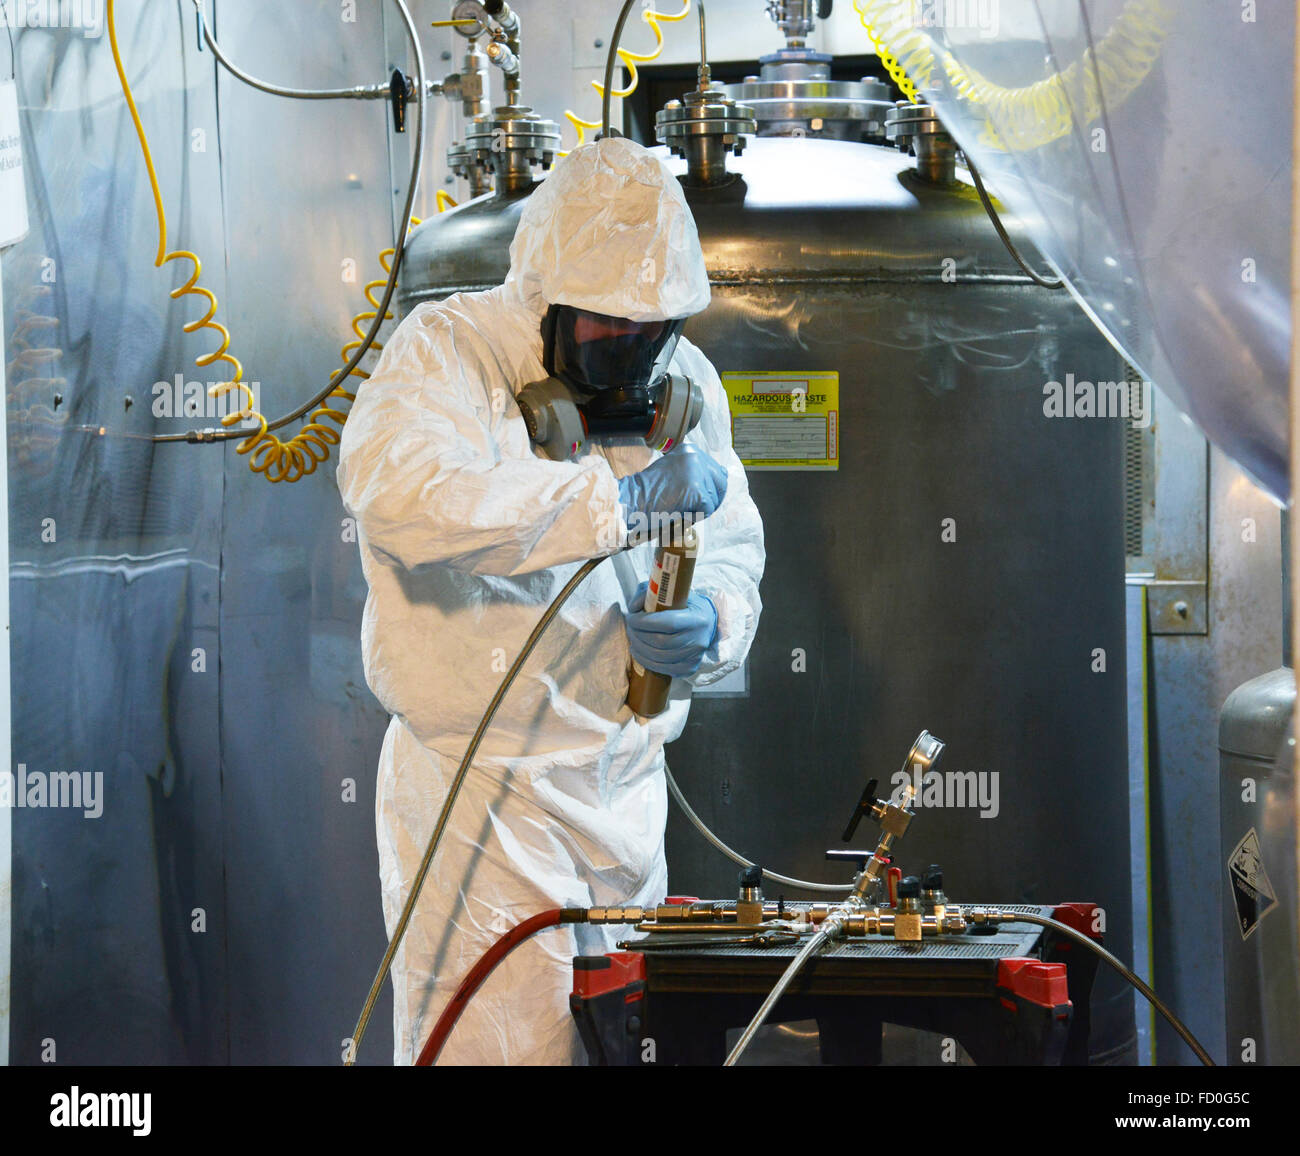 Hazardous, toxic gas management and disposal - Stock Image